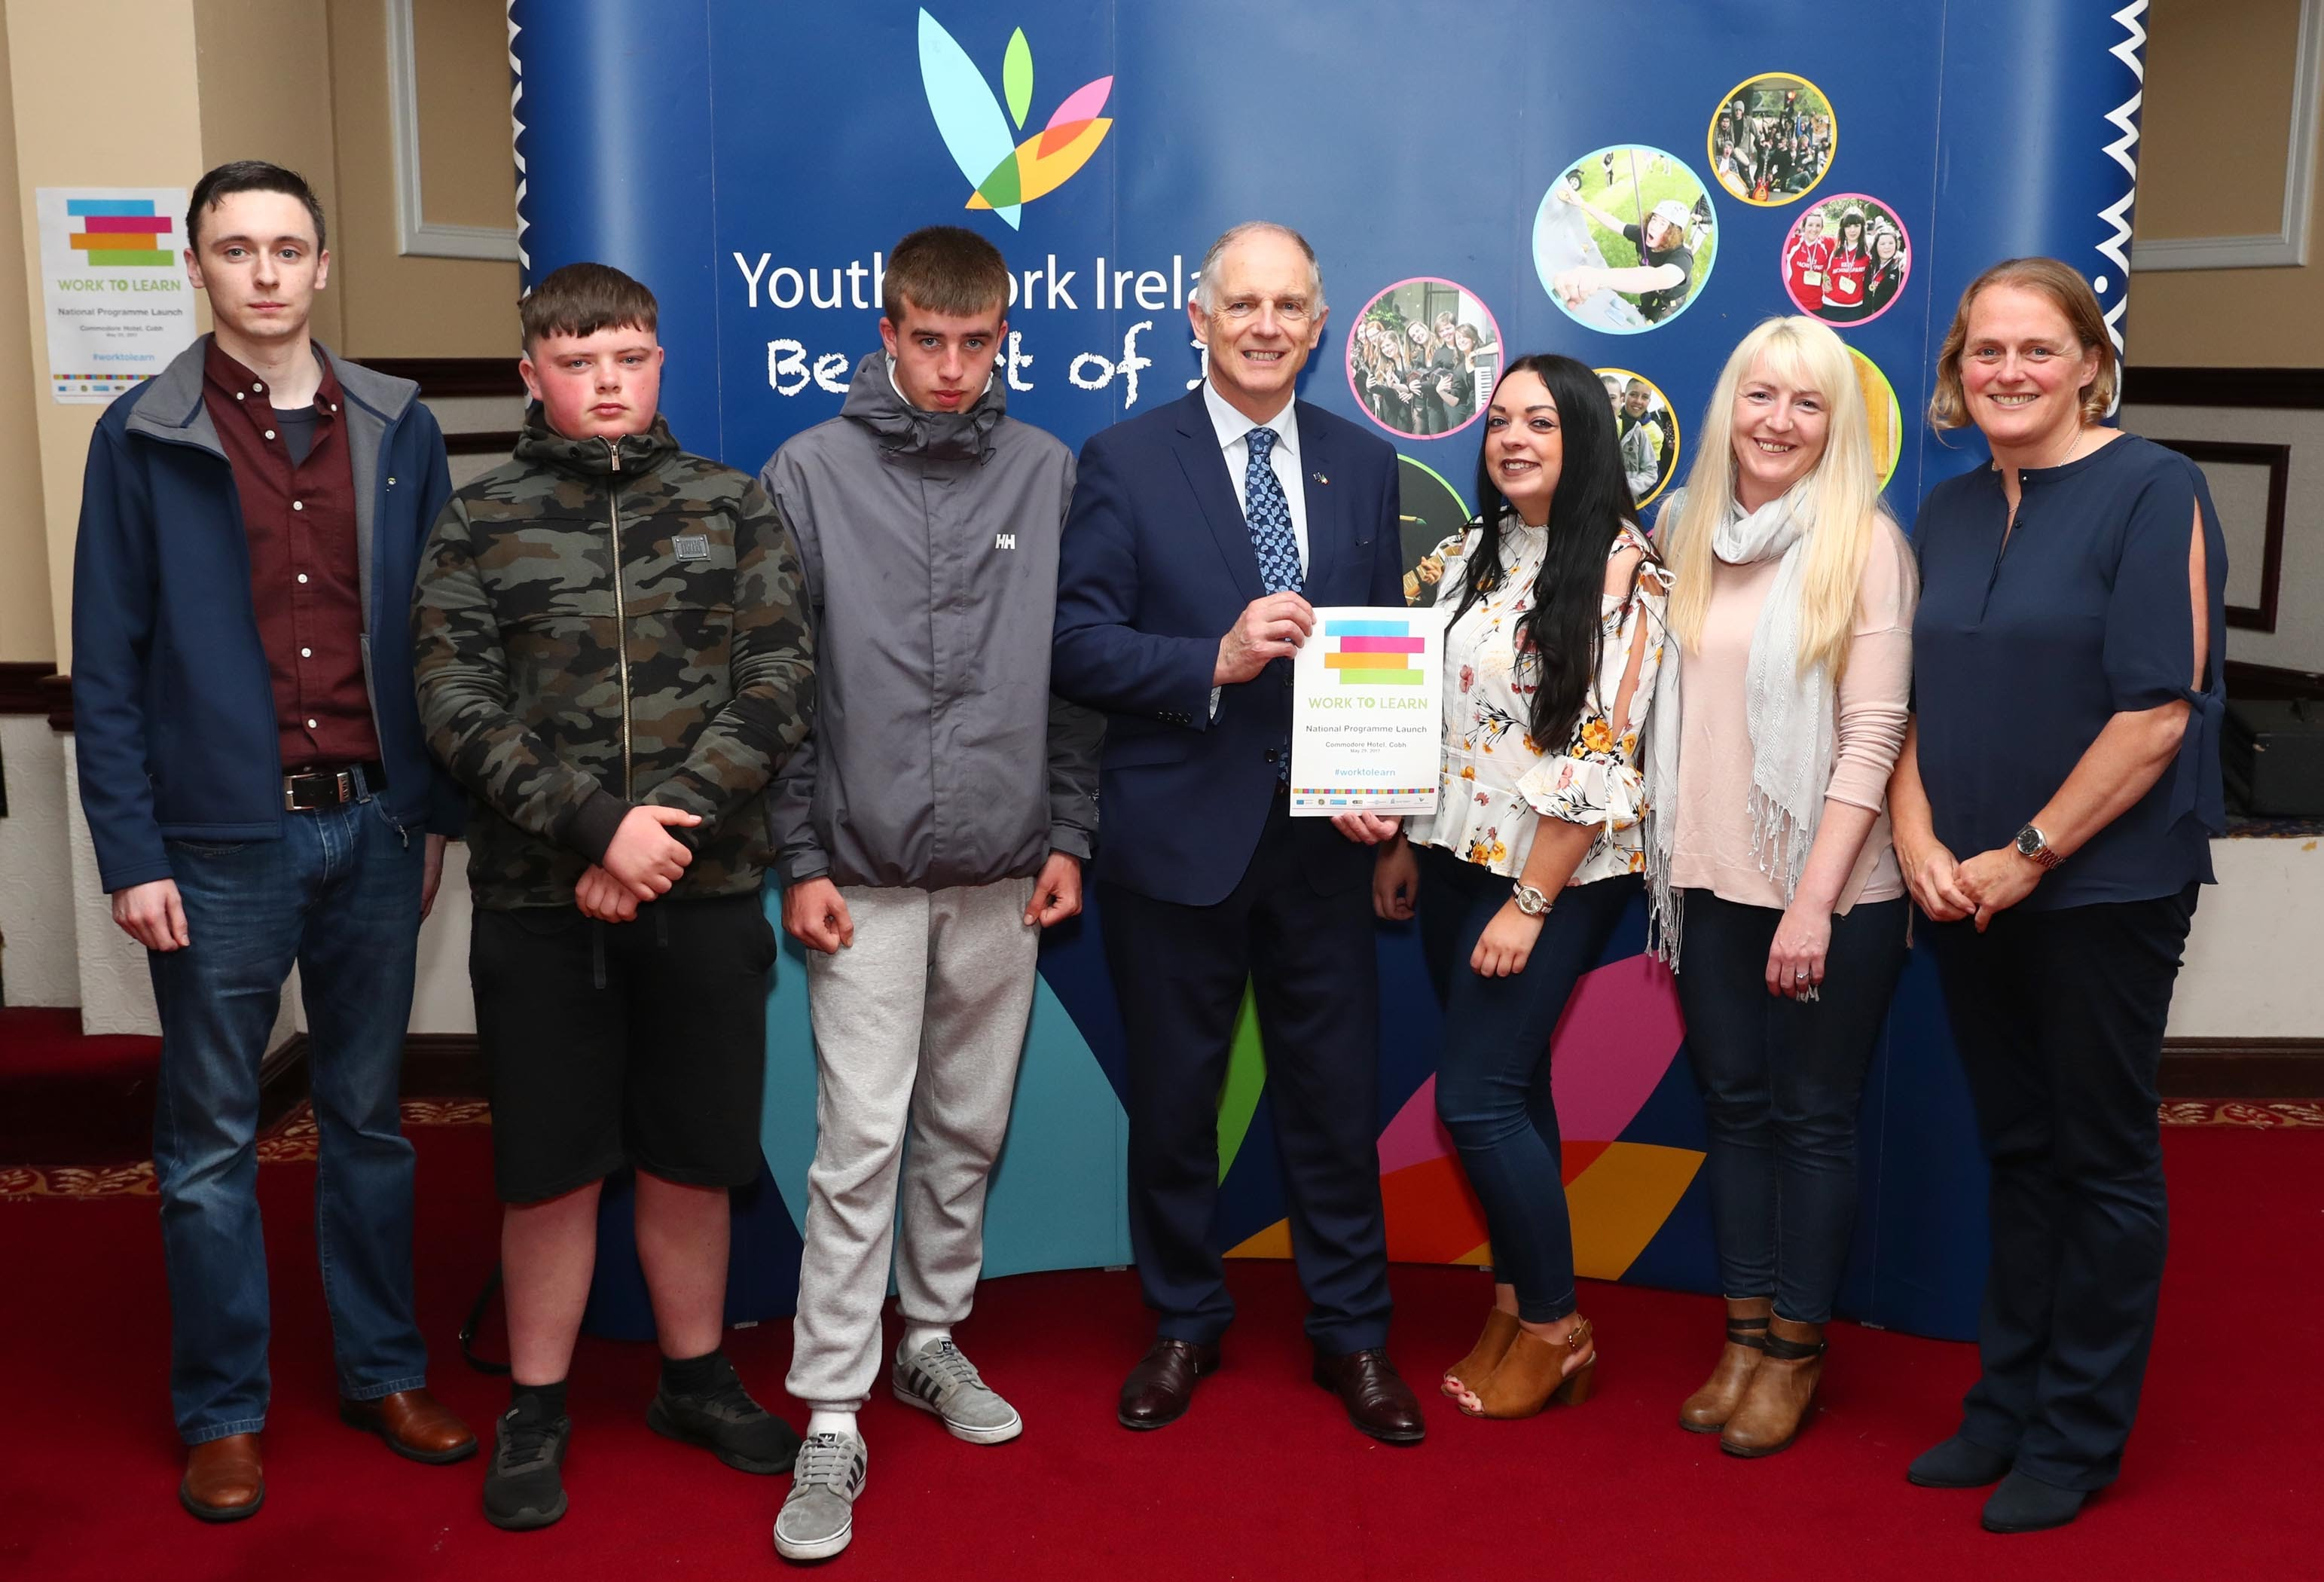 Some of the participants with Minister David Stanton TD